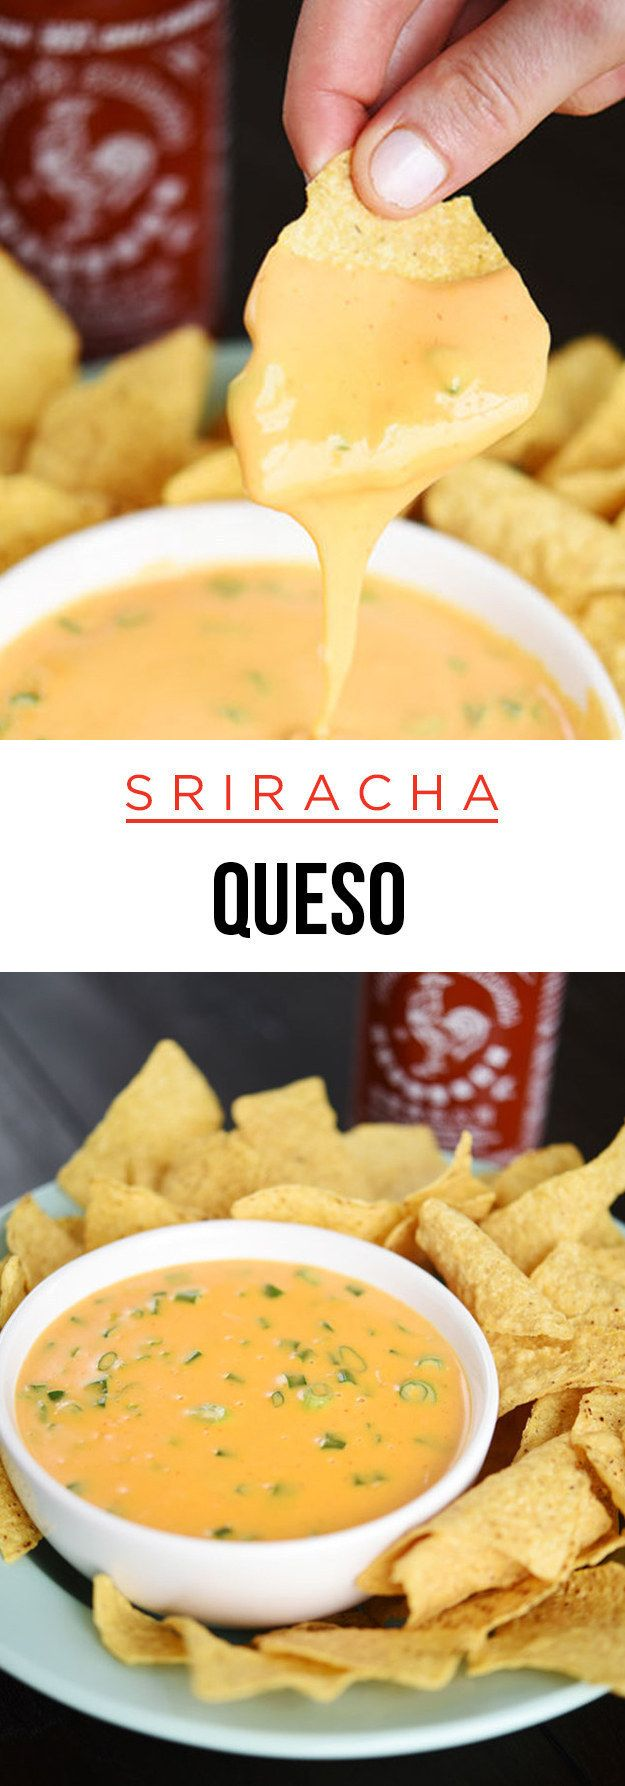 Lazy Girl Sriracha Queso | 25 Incredibly Cheesy Recipes You Need In Your Life